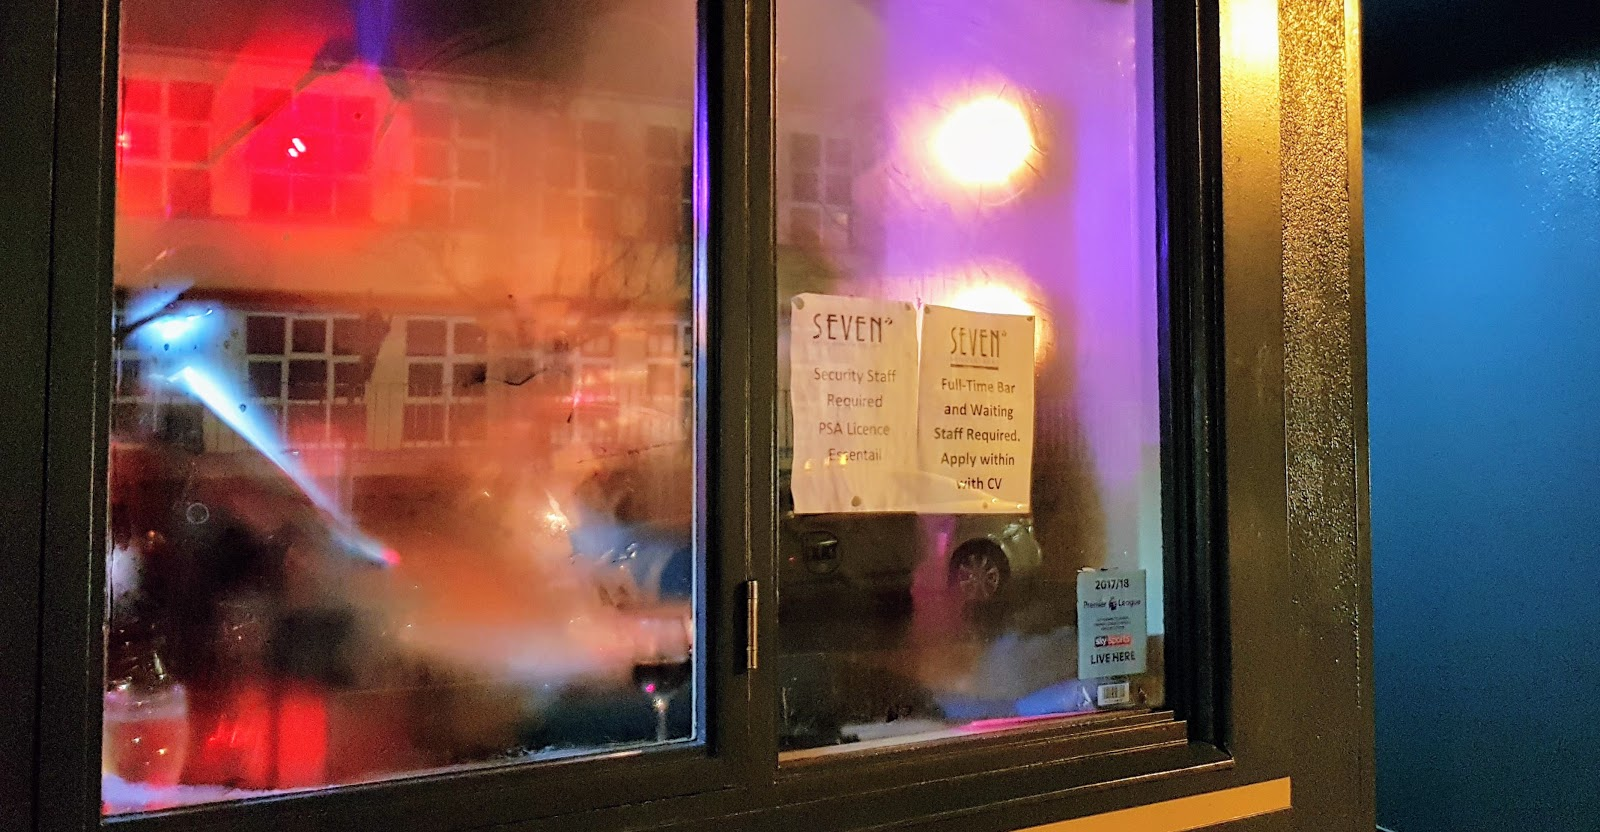 Sing in a restaurant window with blurry Monday night jazz in galway city in the background viewed through a fogged up window